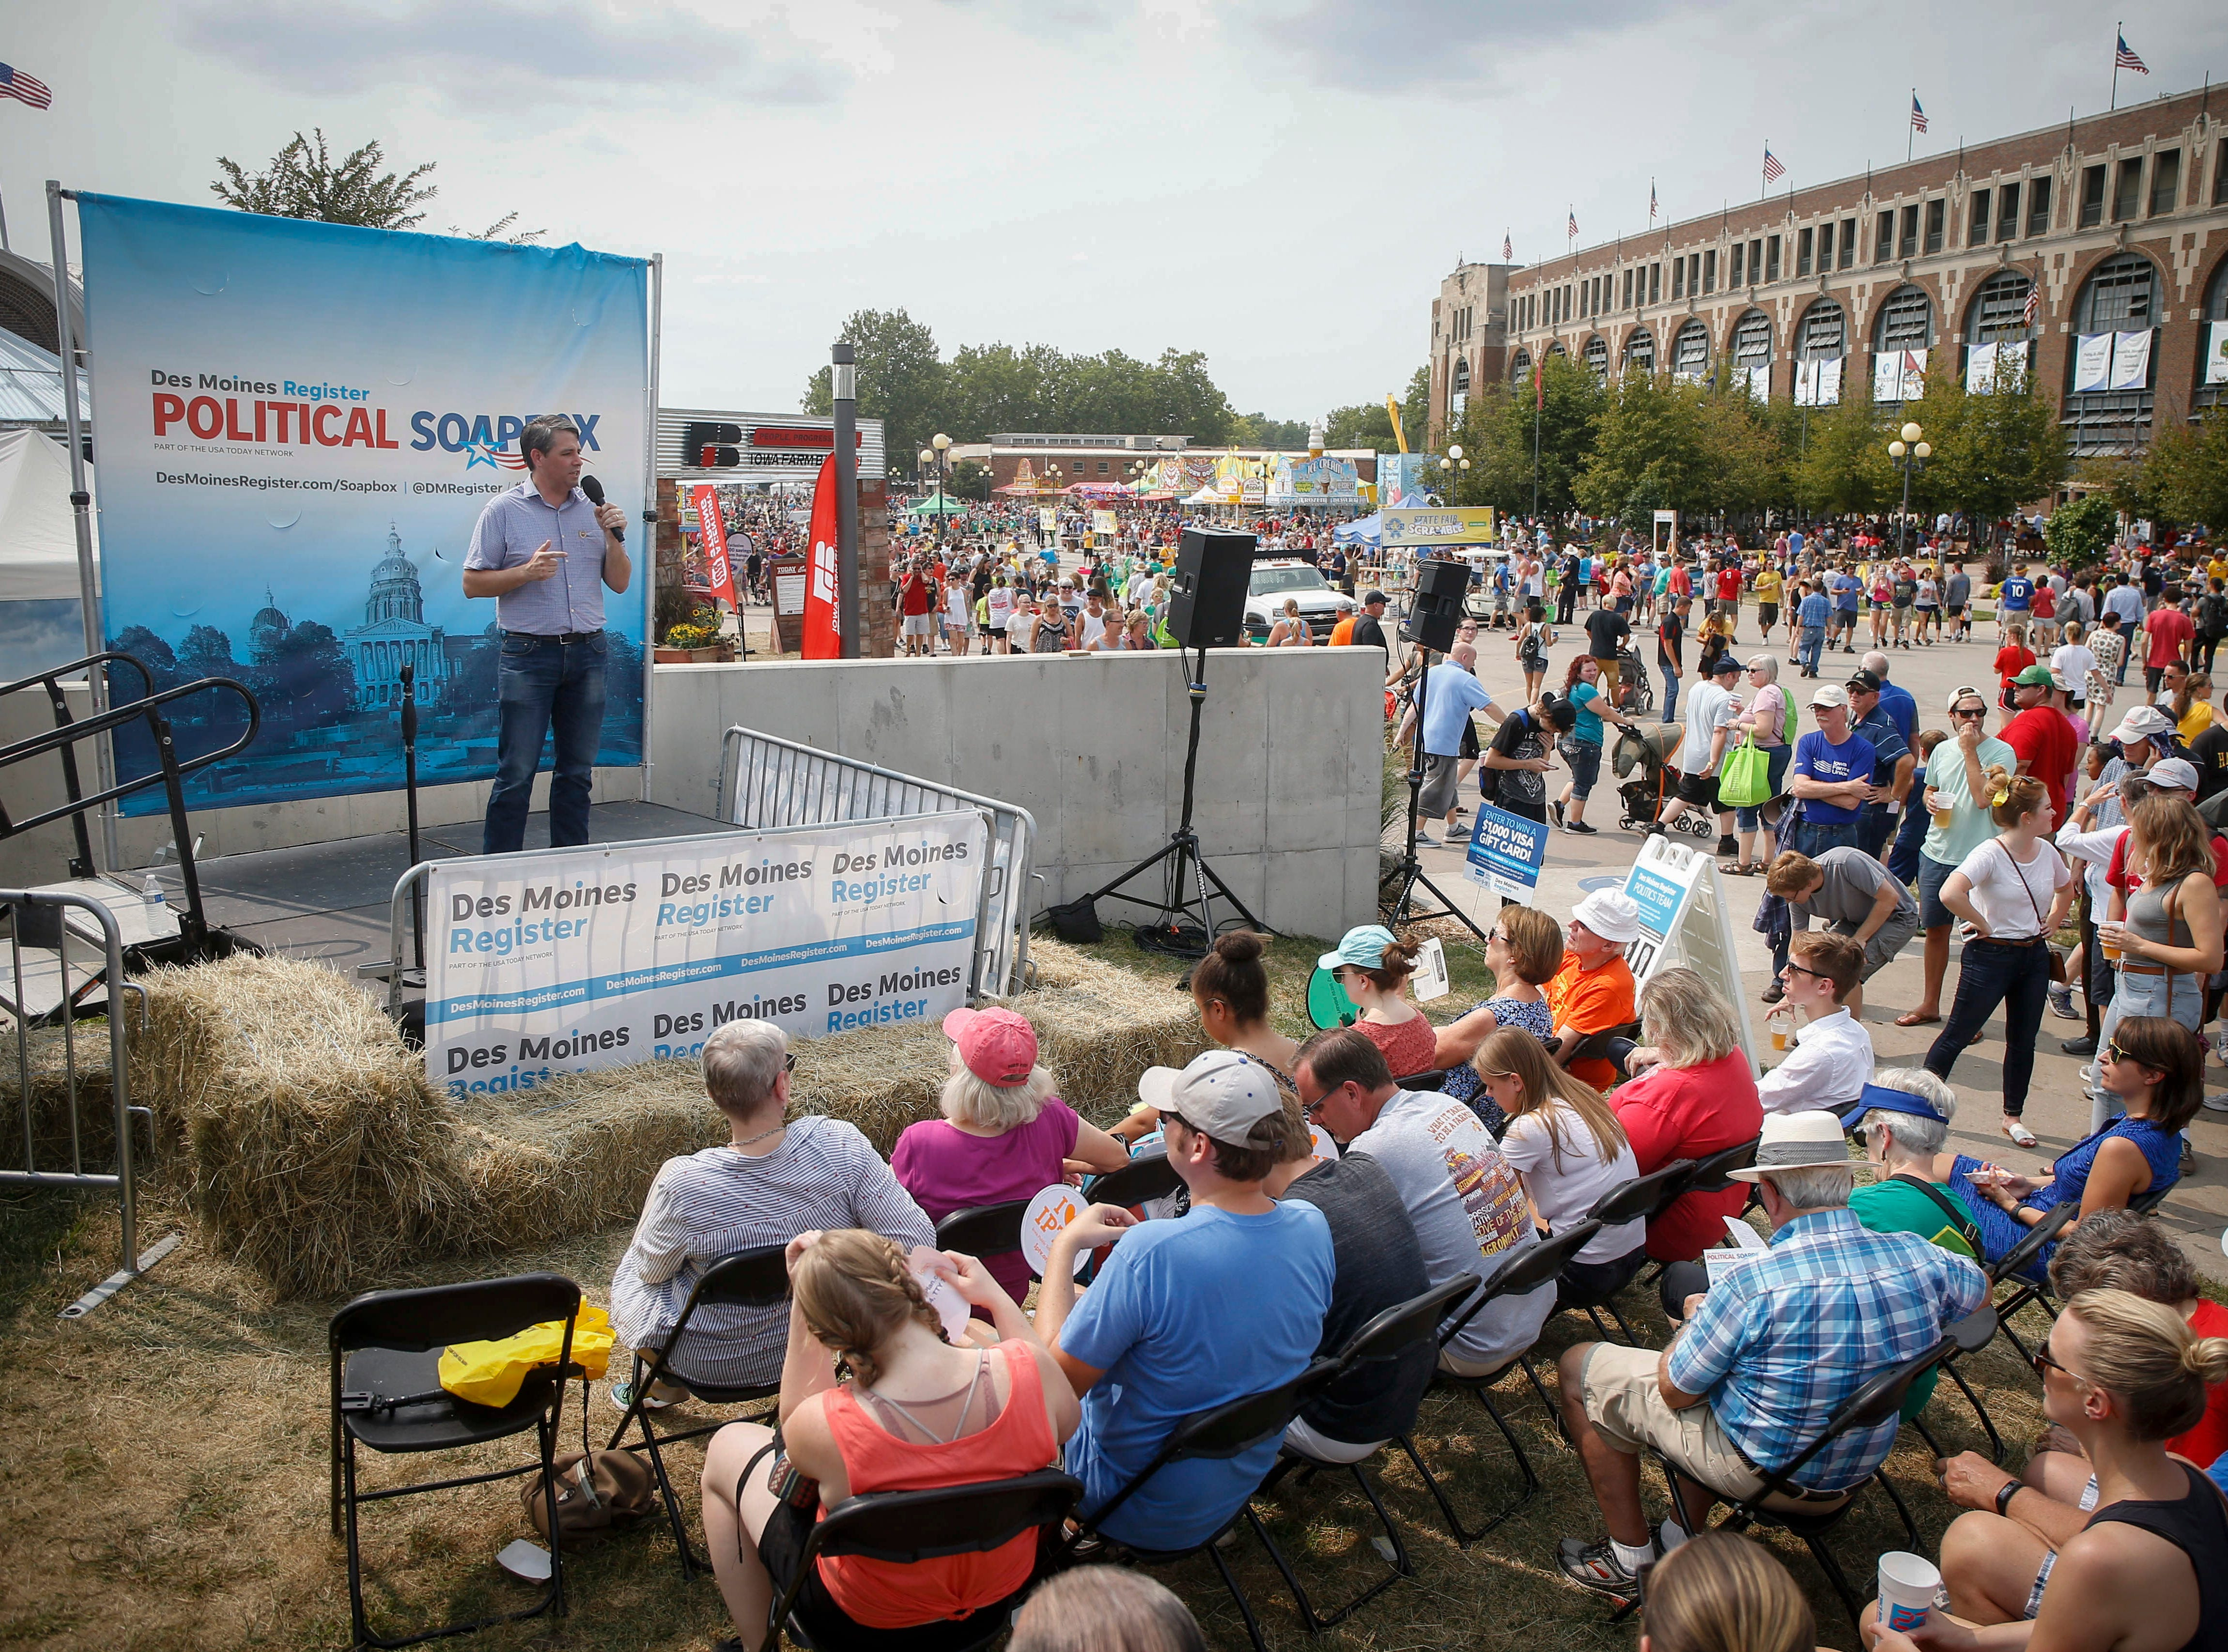 Tim Gannon, Democratic candidate for Iowa Secretary of Agriculture, speaks with supporters during the Political Soapbox on Saturday, Aug. 11, 2018, during the Iowa State Fair in Des Moines.